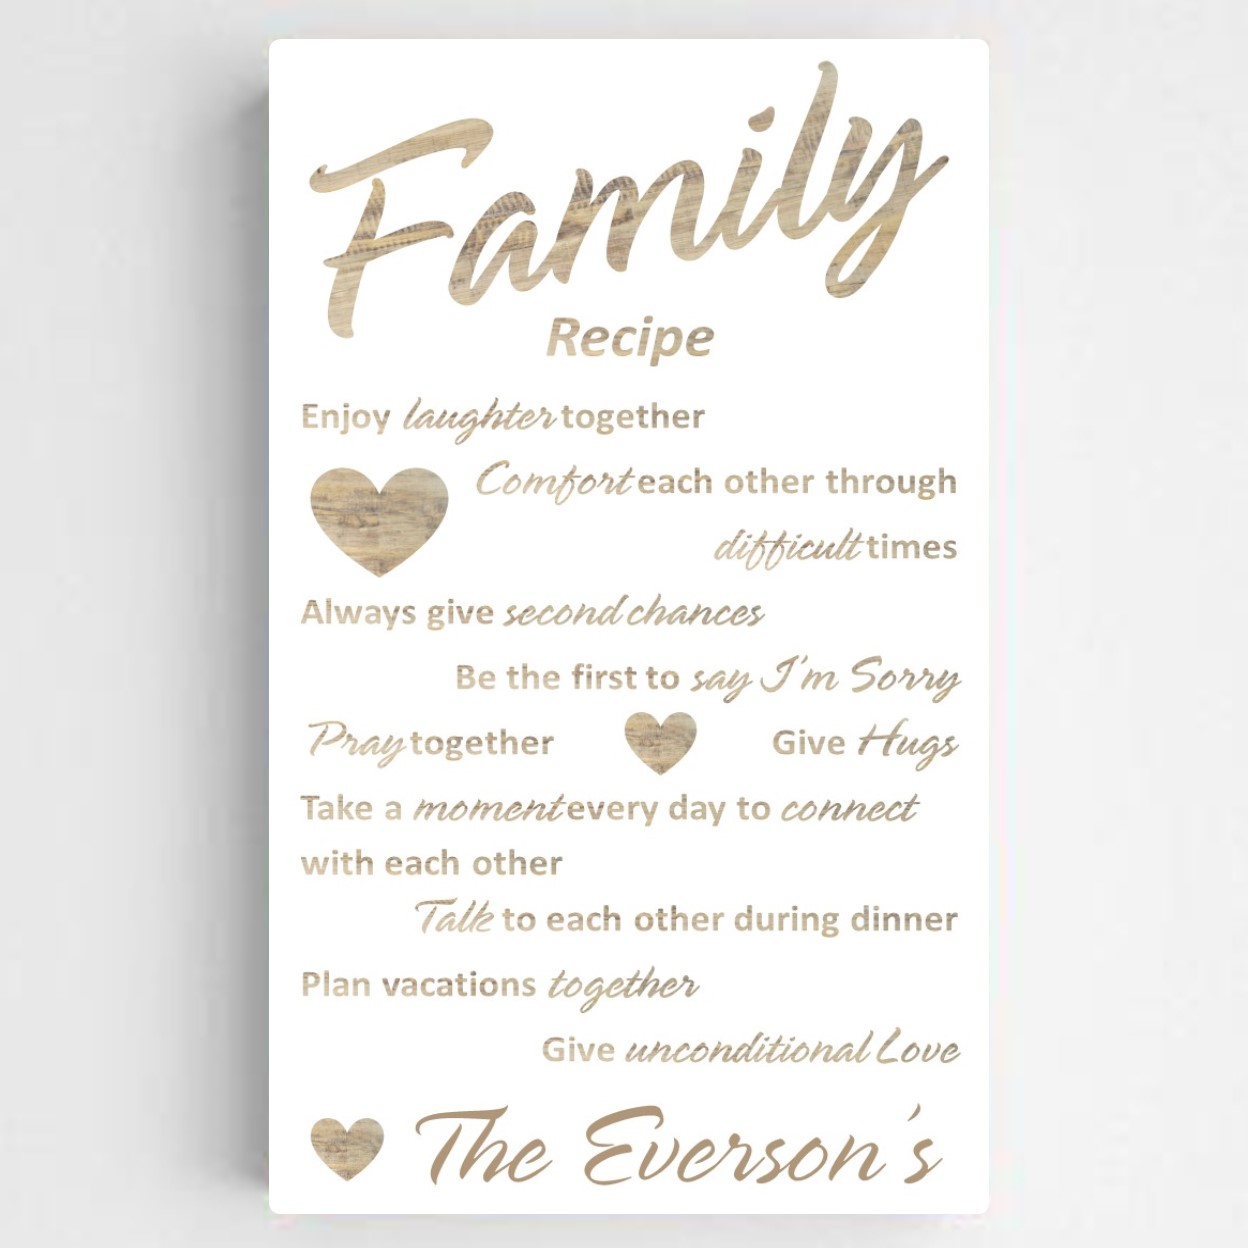 Gifts For 50th Wedding Anniversary Ideas: Best 50th Wedding Anniversary Gift Ideas For Your Parents